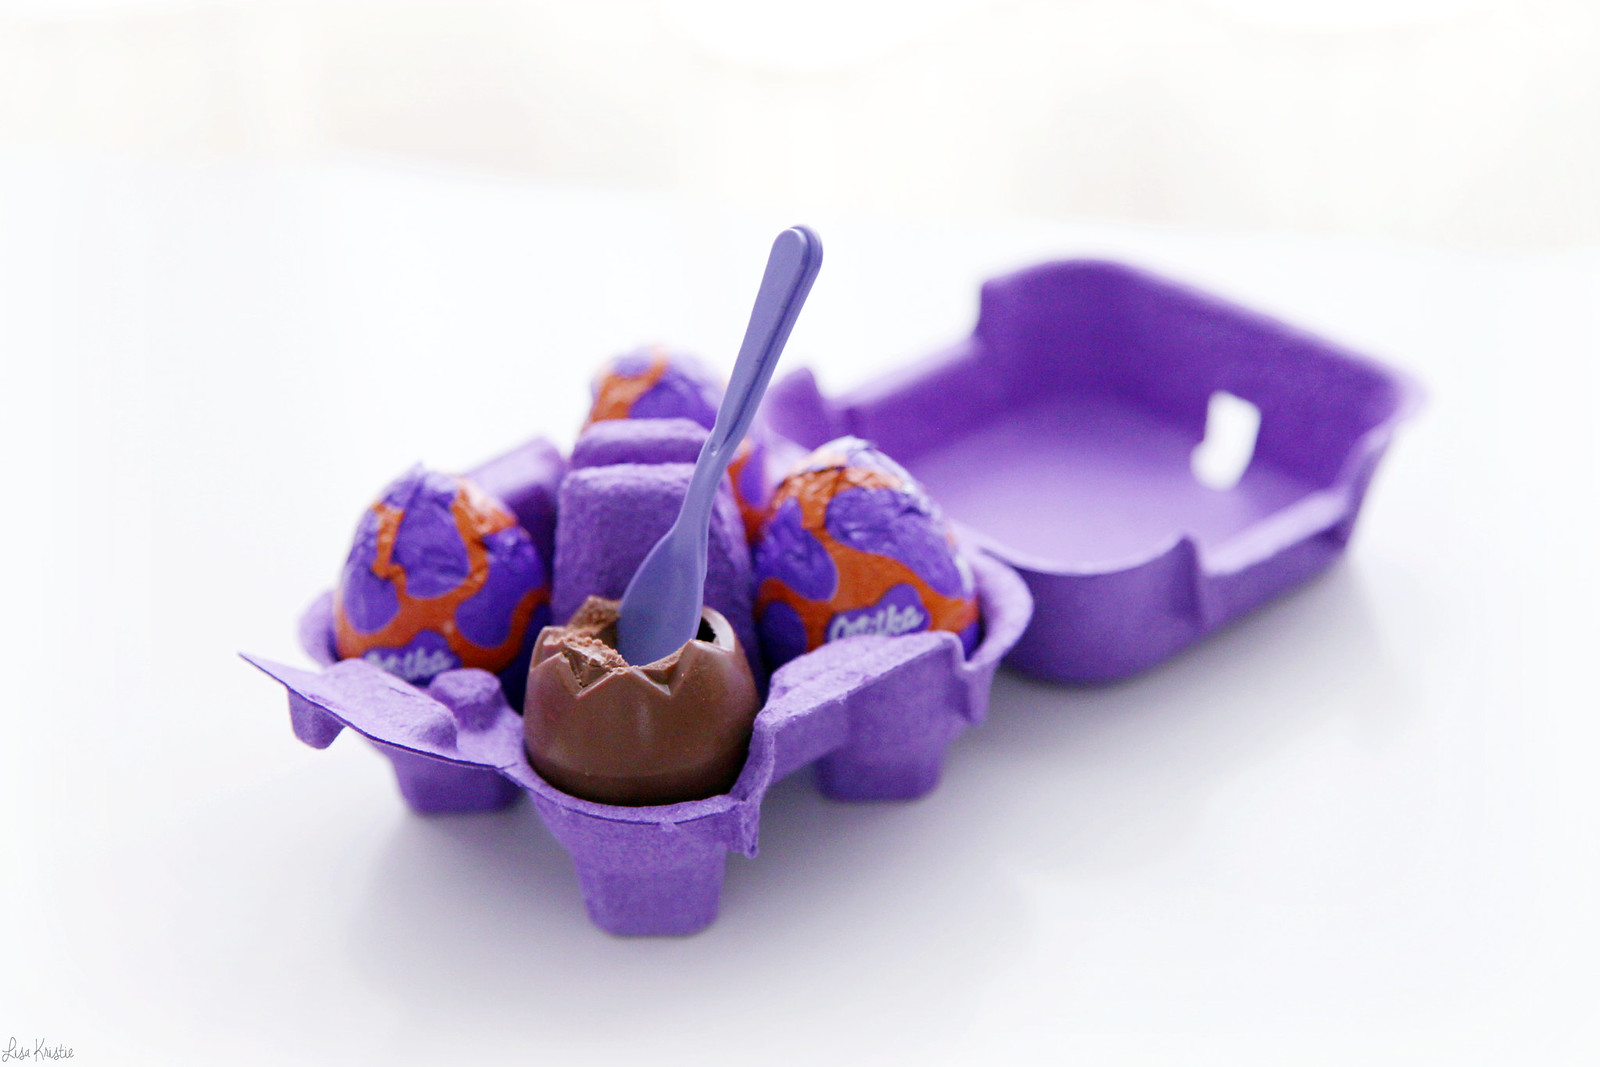 Milka chocolate easter eggs mousse with a spoon real egg carton purple eat inside filling